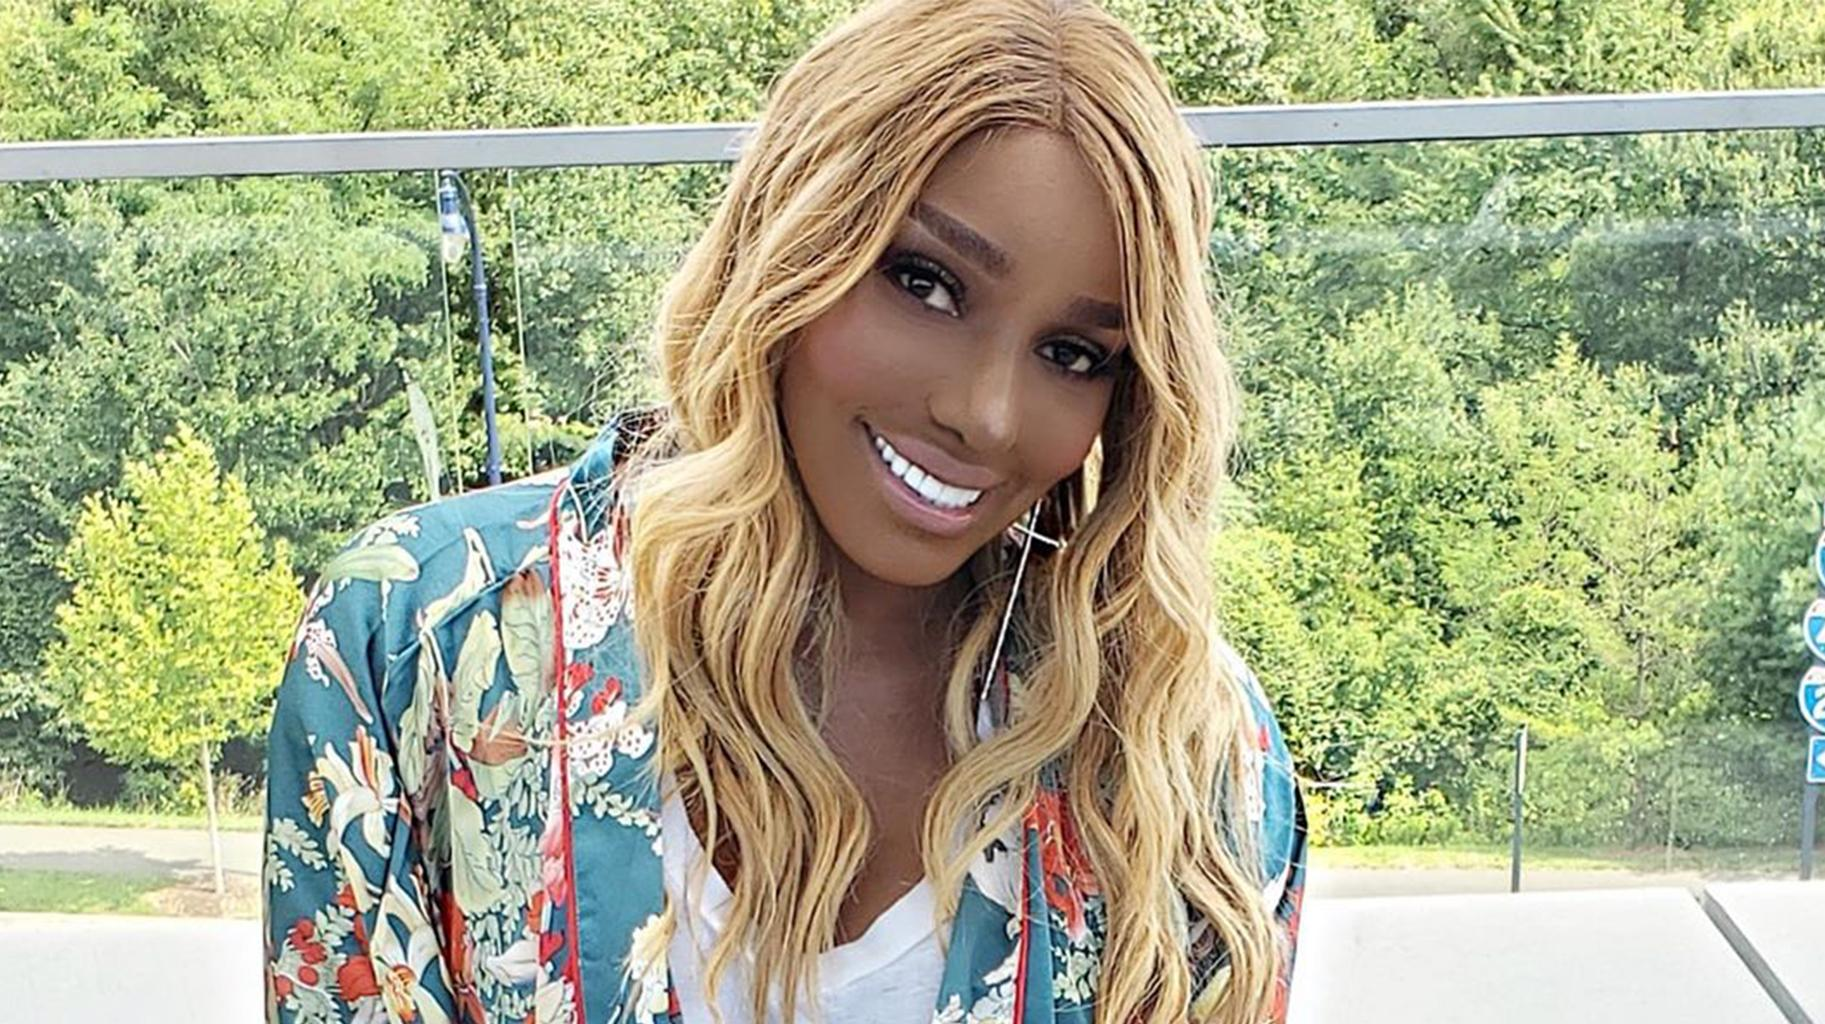 NeNe Leakes Is Into Relationship Topics Lately, But She Tells Fans Not To Worry Because She And Gregg Leakes Are Good